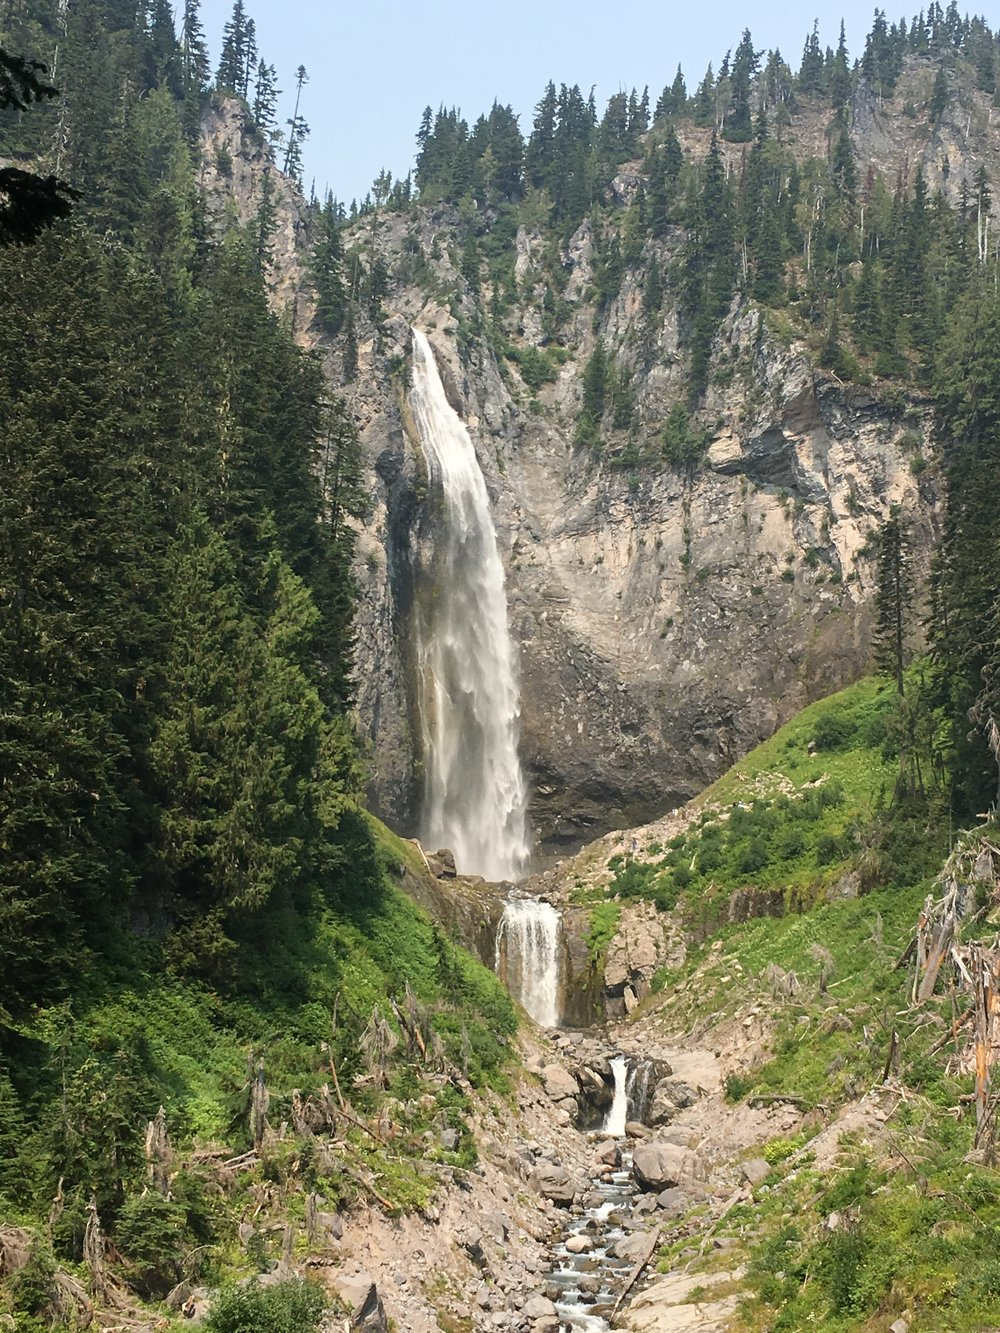 One of the falls on our amazing hike up Mt. Rainier.